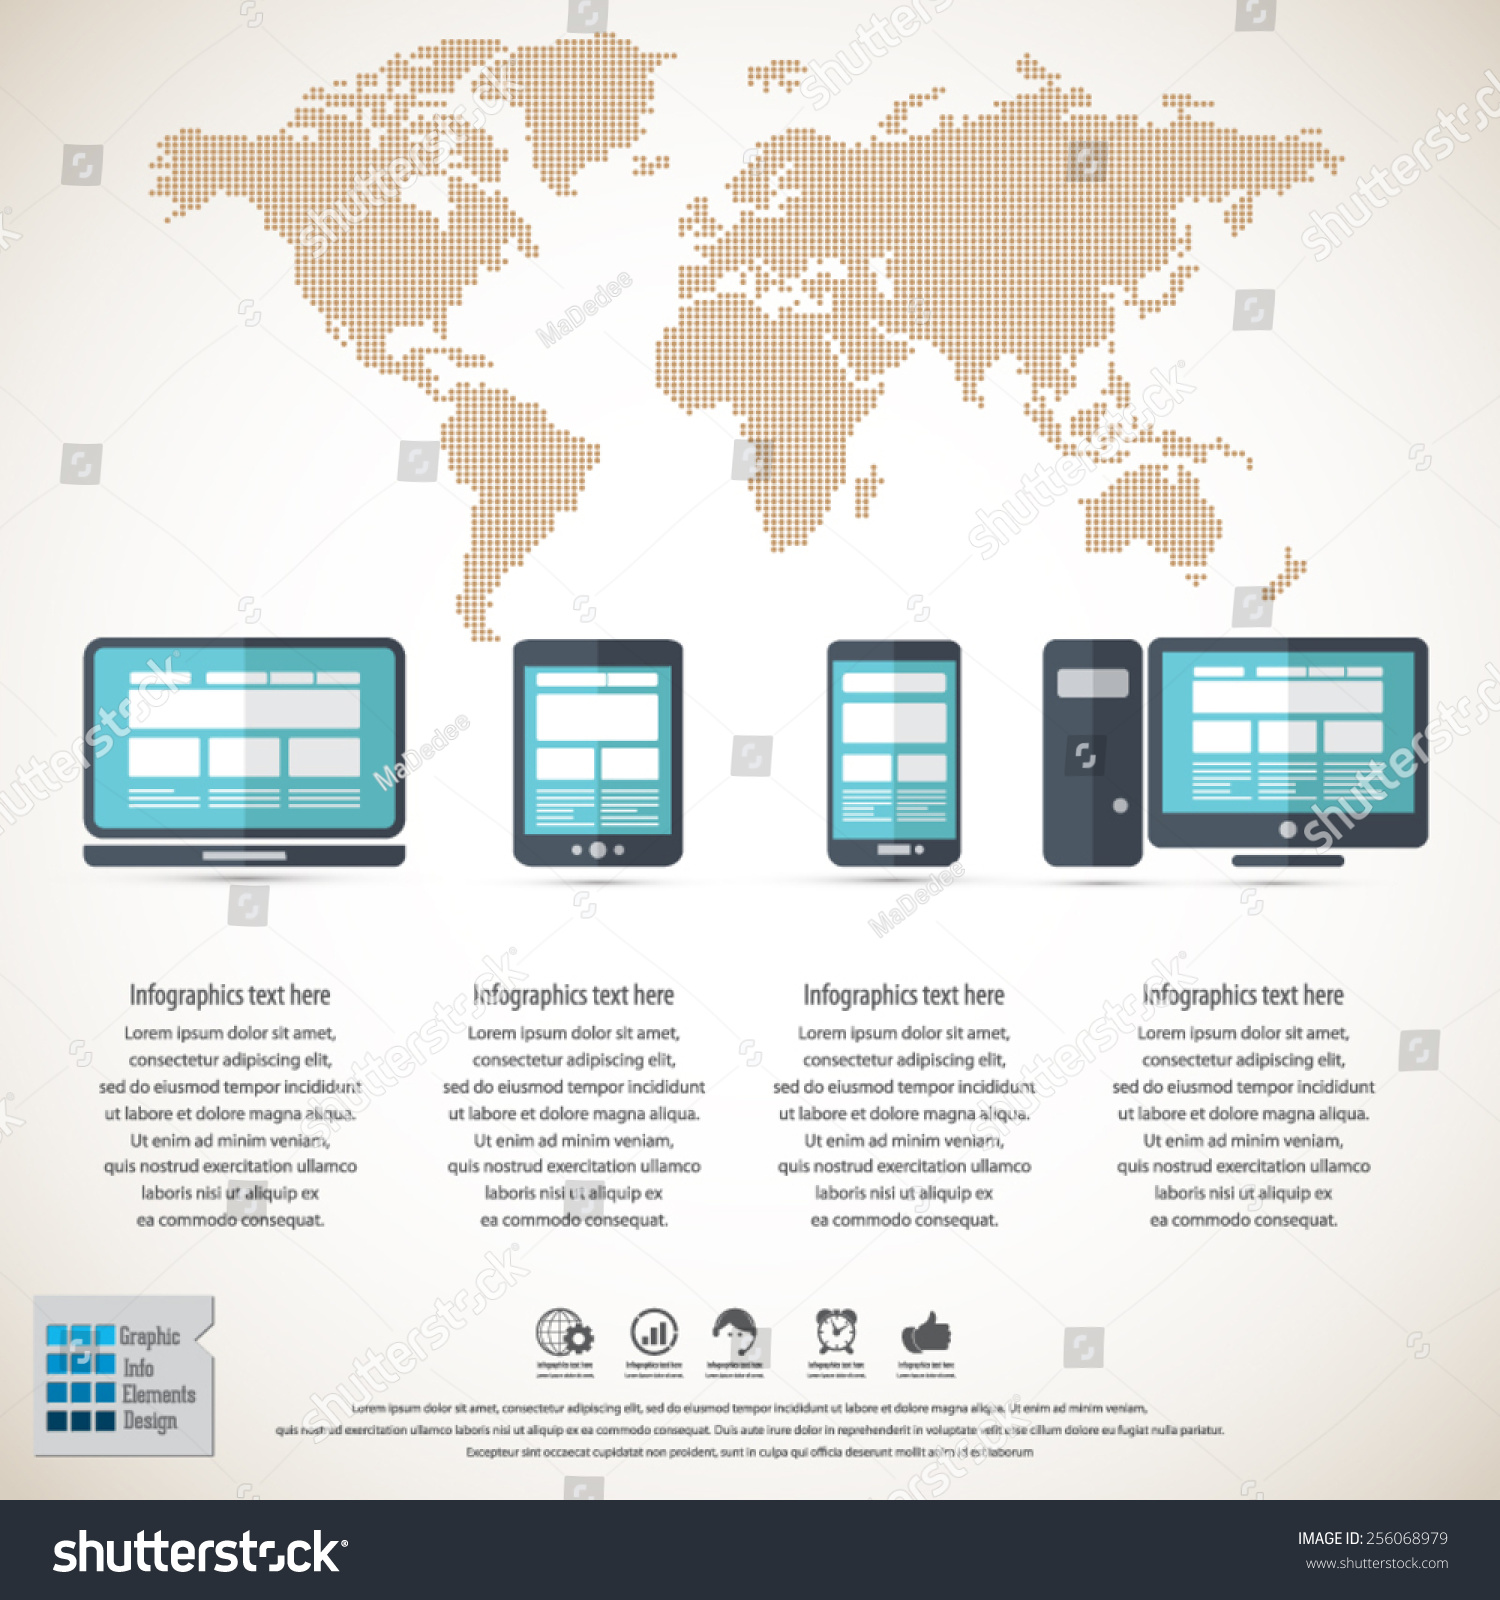 Responsive web design on different devices stock vector 256068979 responsive web design on different devices stock vector 256068979 shutterstock gumiabroncs Images